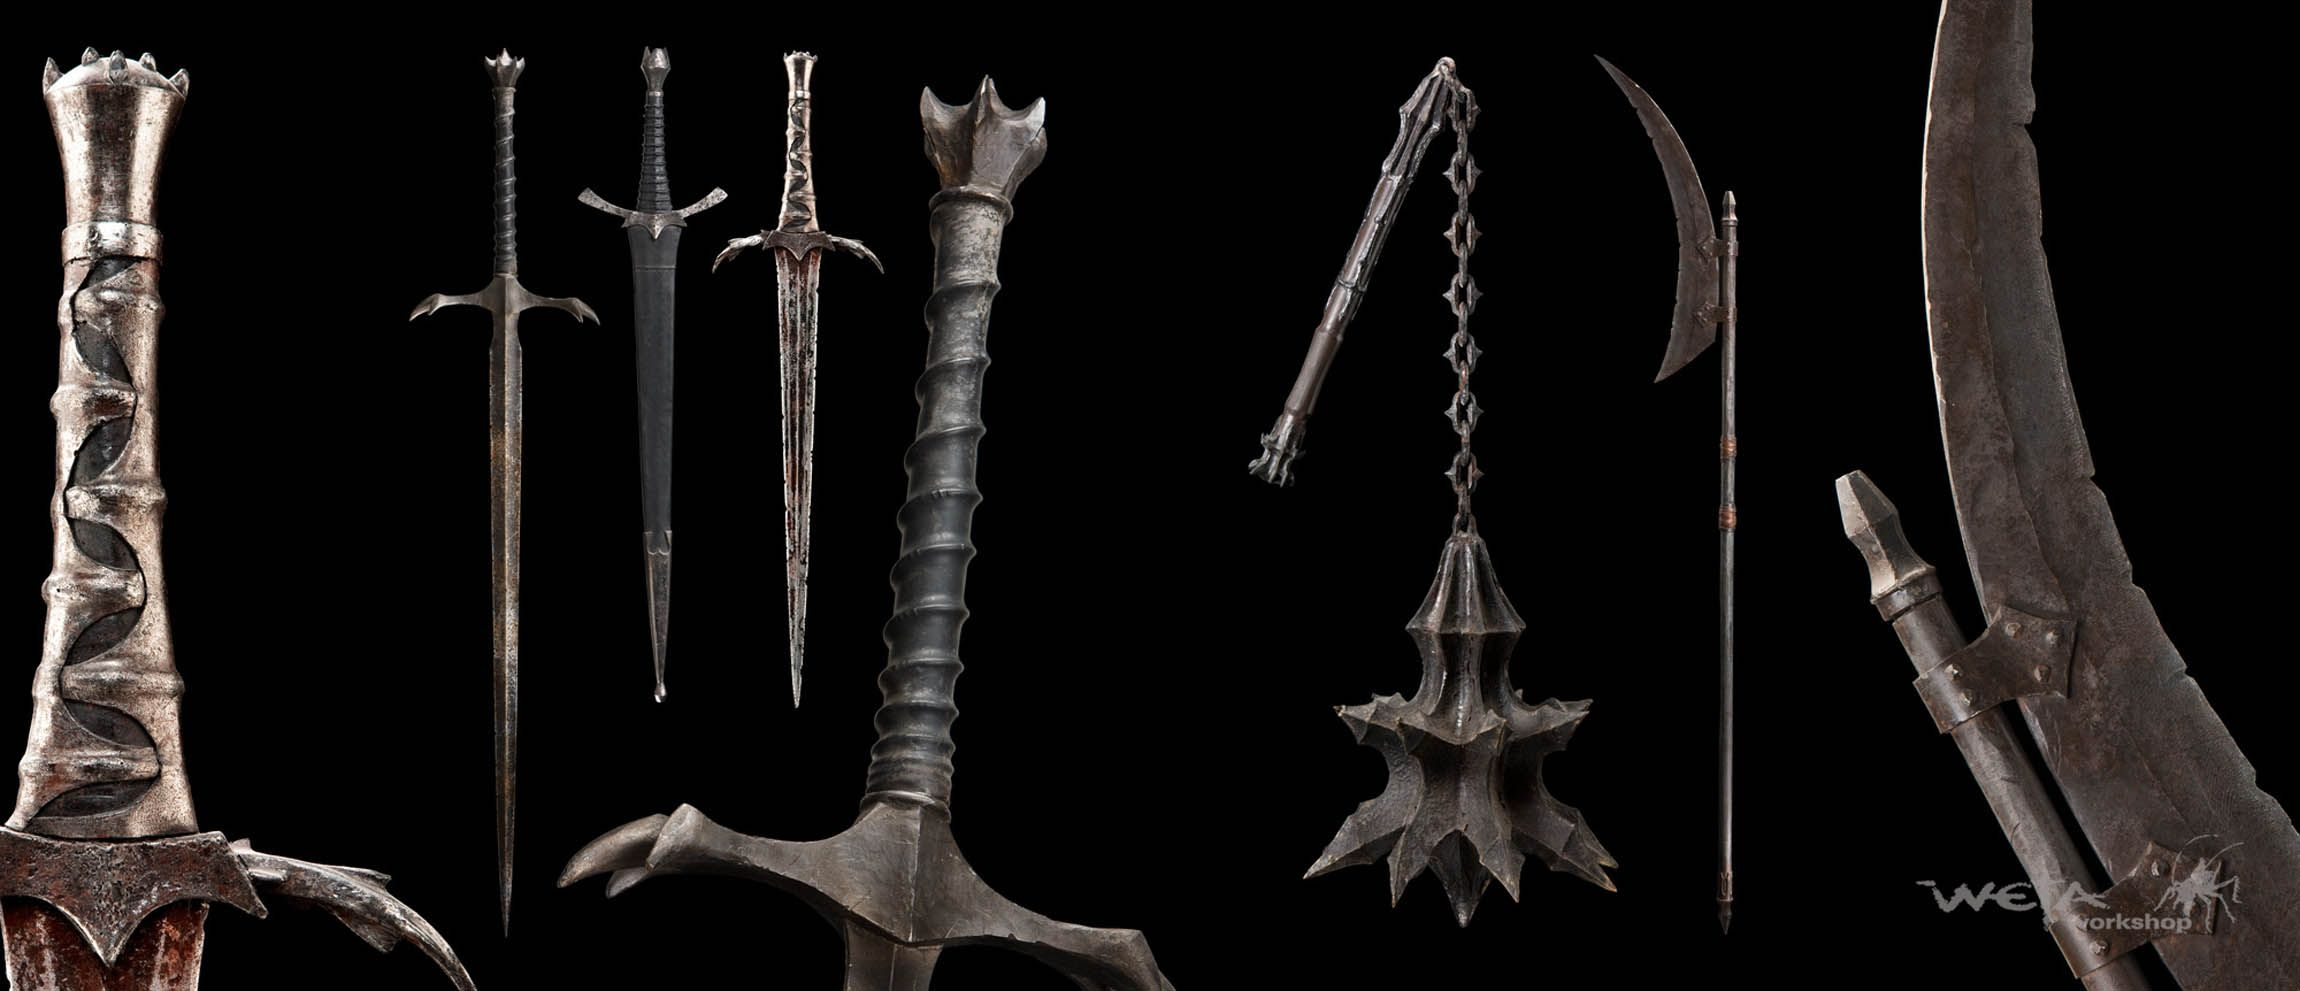 http://wetaworkshop.com/assets/Uploads/Lord-of-the-Rings ...